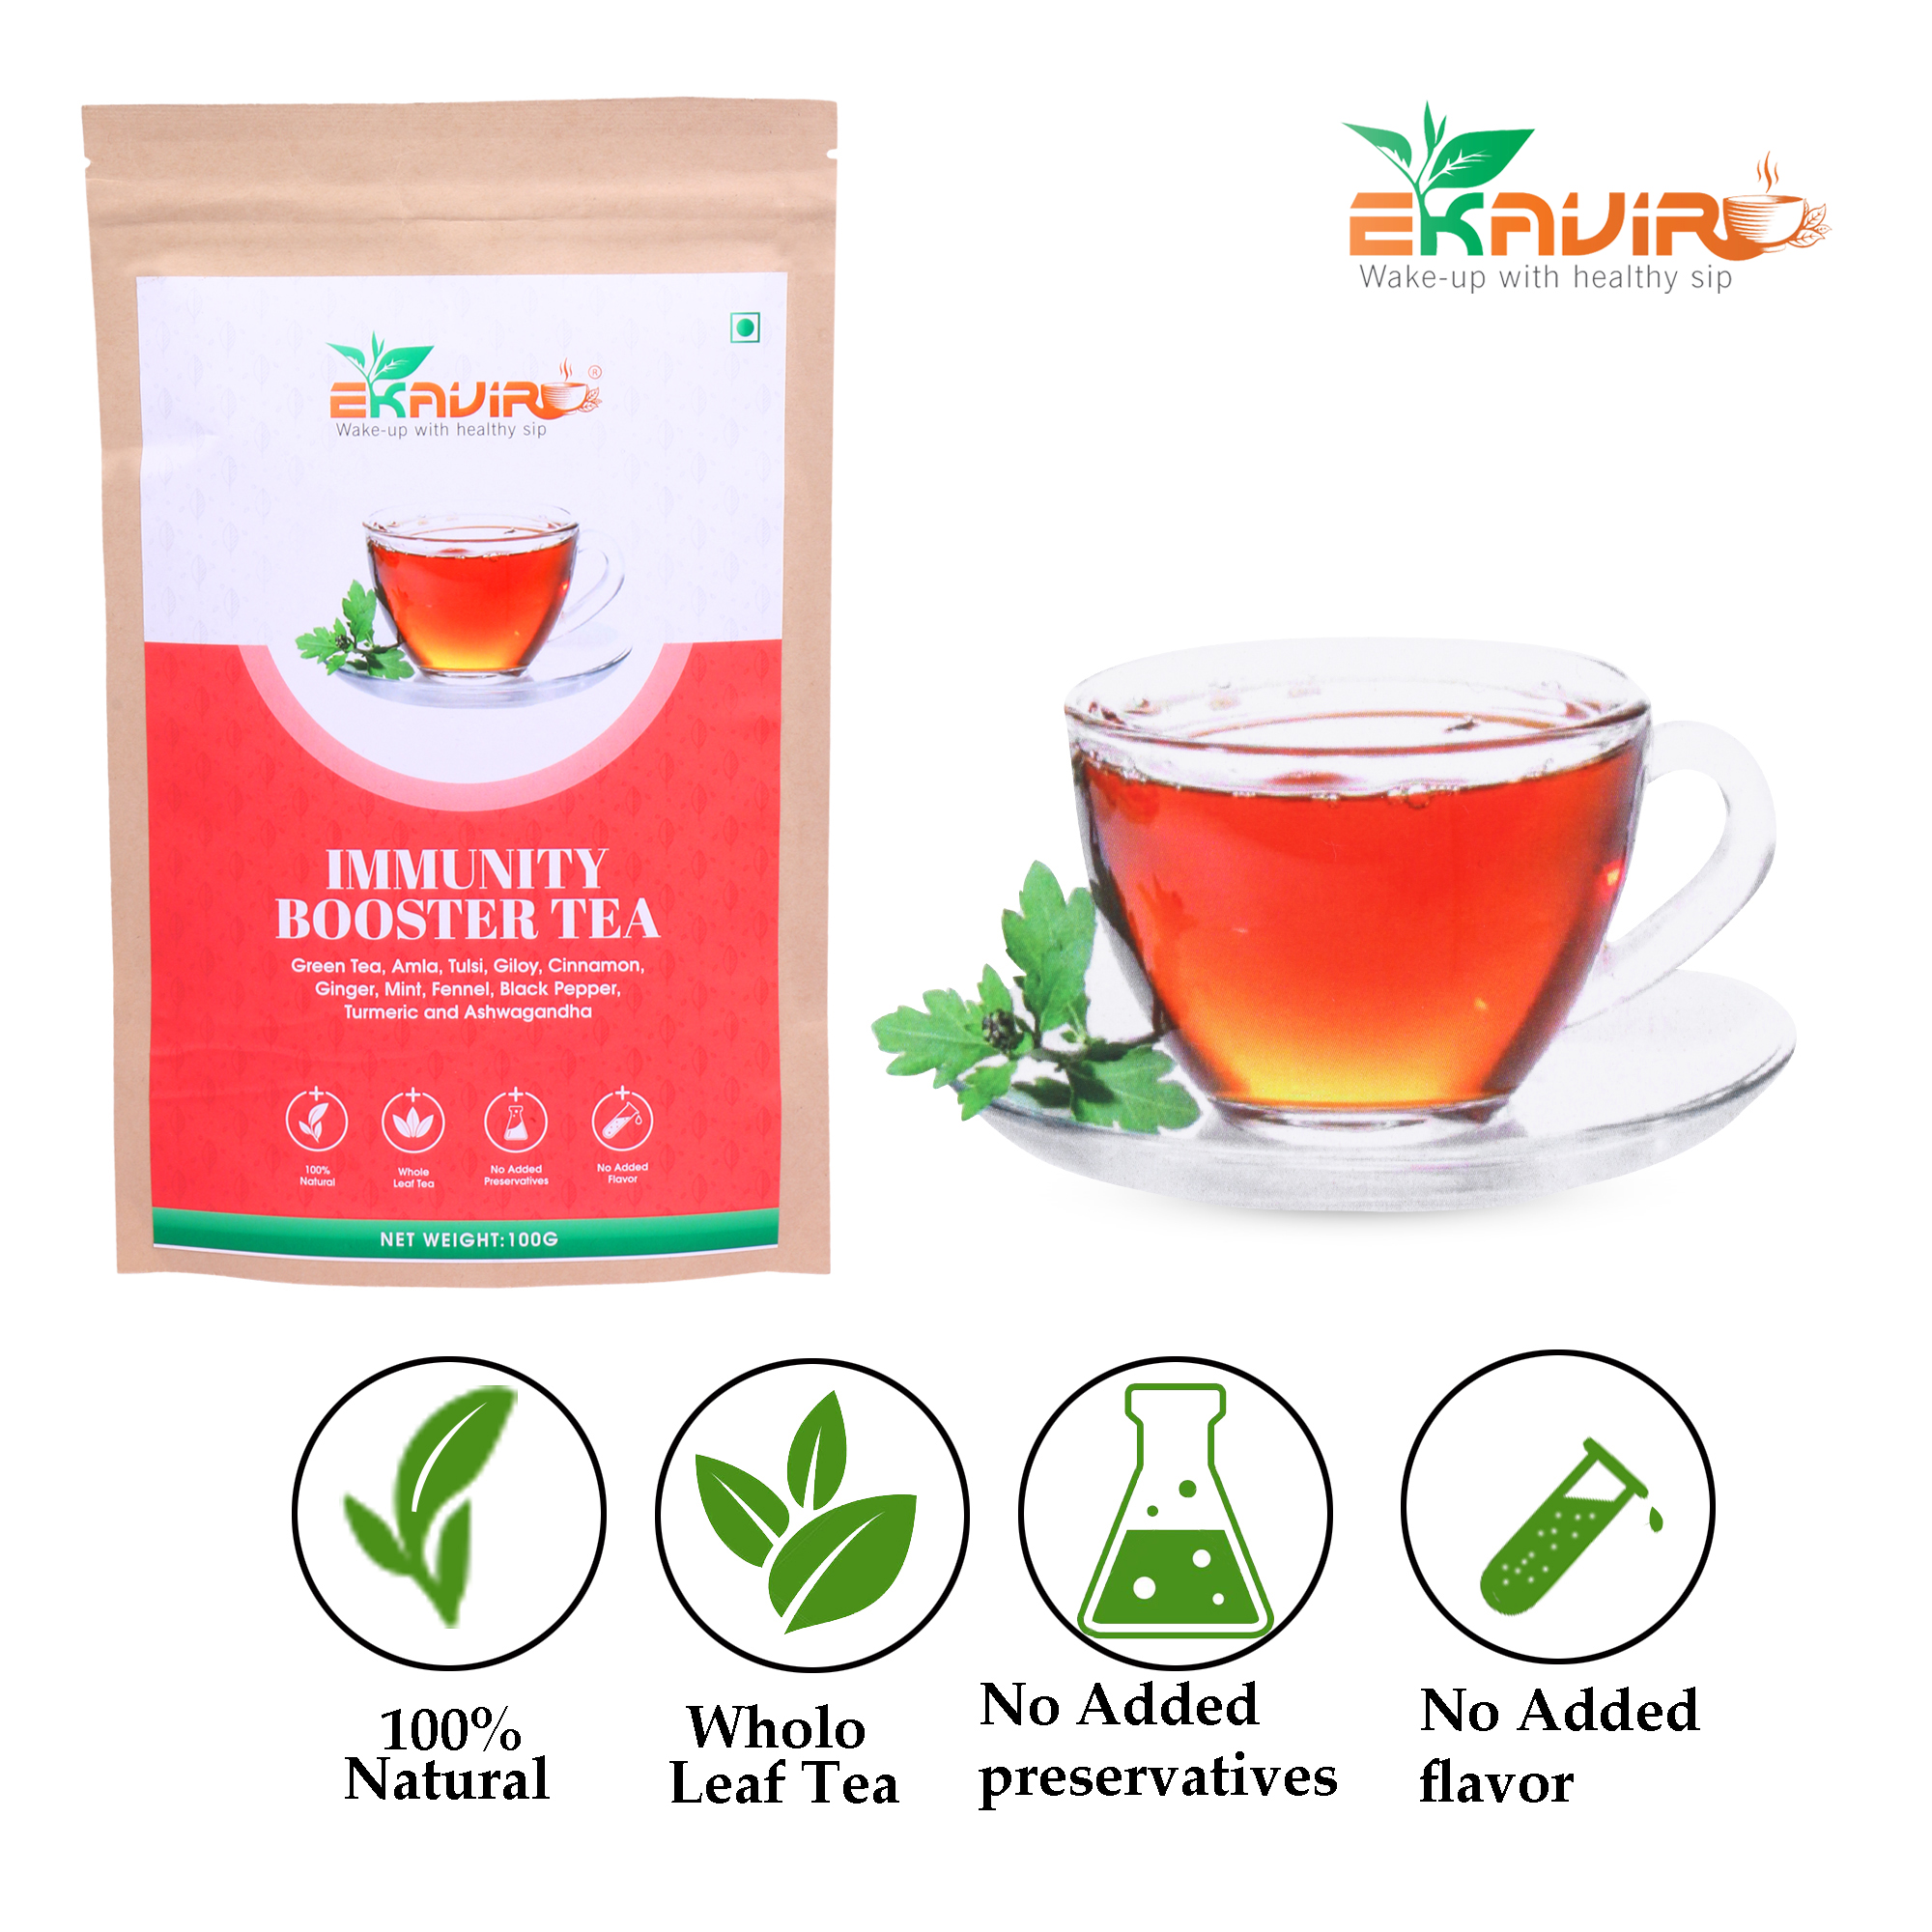 Immunity Booster Green Tea with Ginger, Mint, Fennel, Black Pepper, Turmeric, Ashwagandha and  Aamla, Tulsi, Giloy, Cinnamon, Green tea For Adults and Teenager.